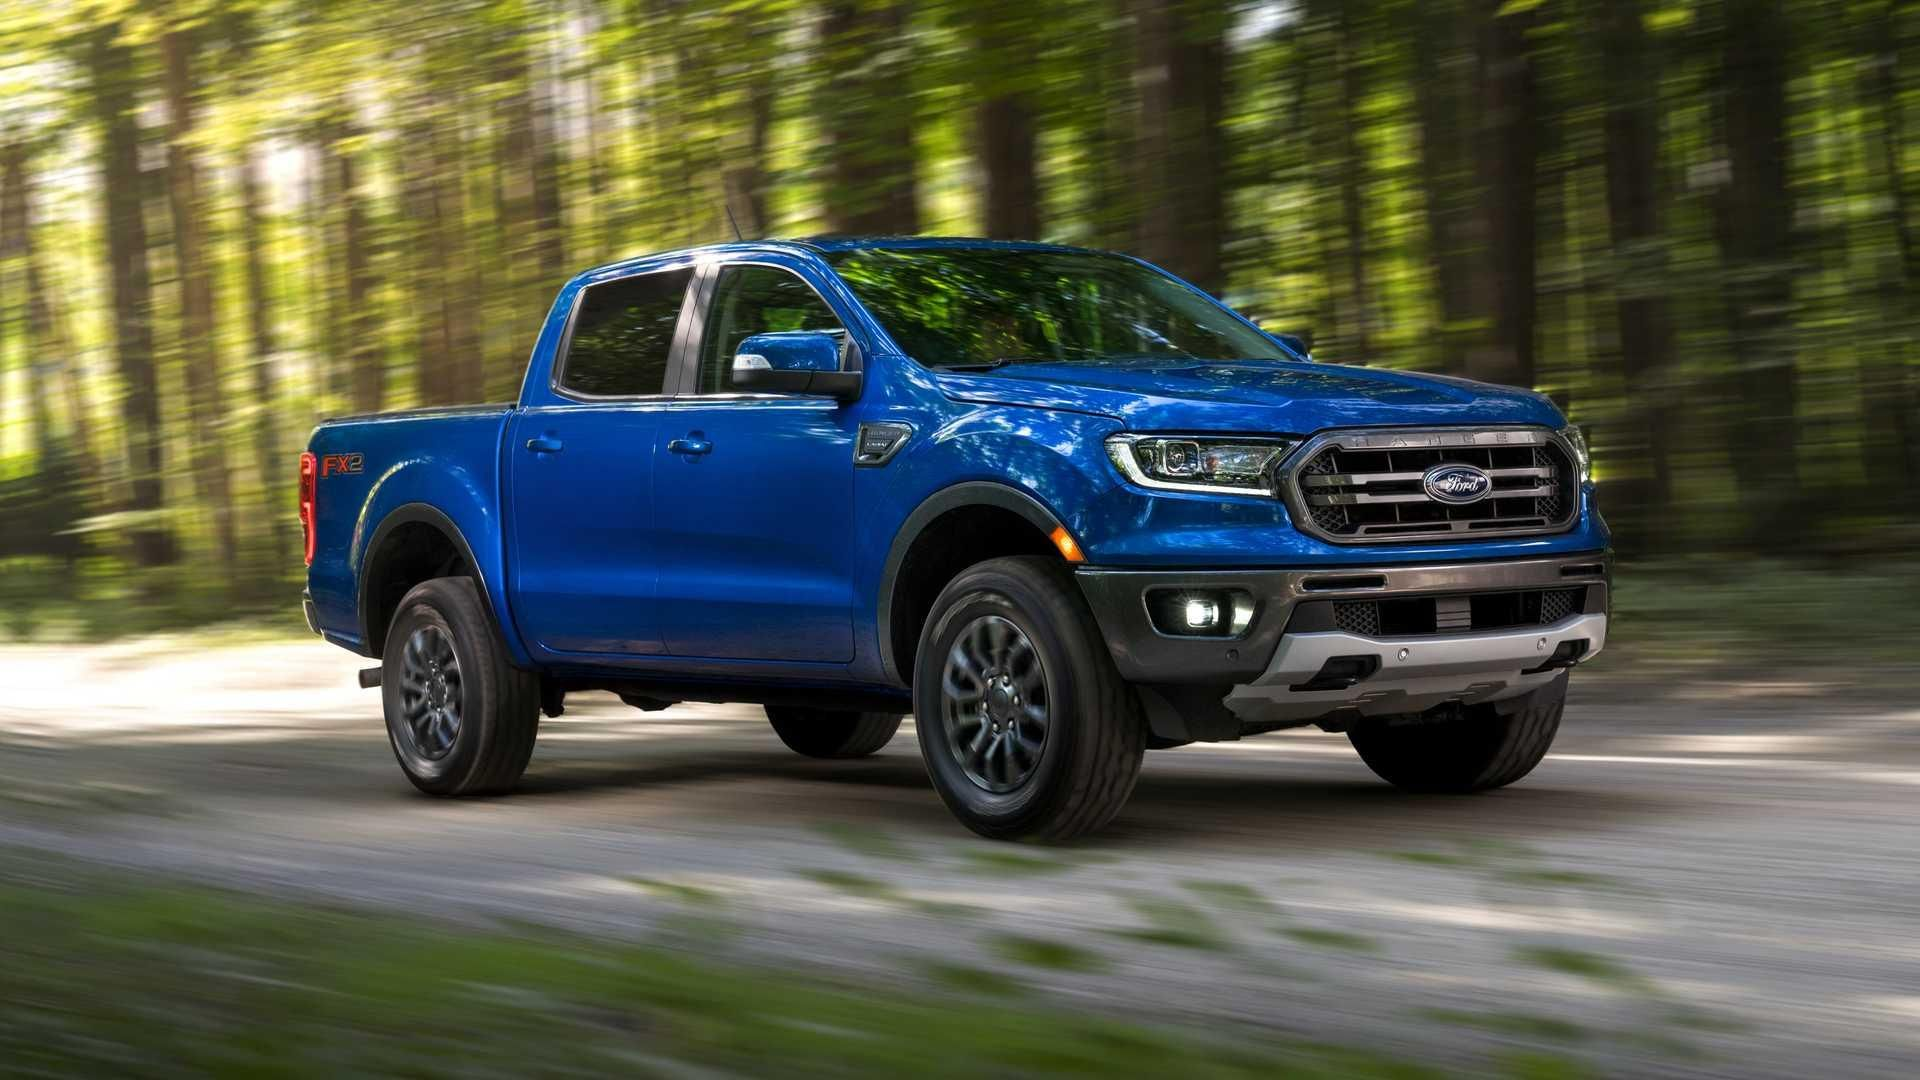 2020 Best Truck Bed Liners in 2020 Ford ranger, 2020